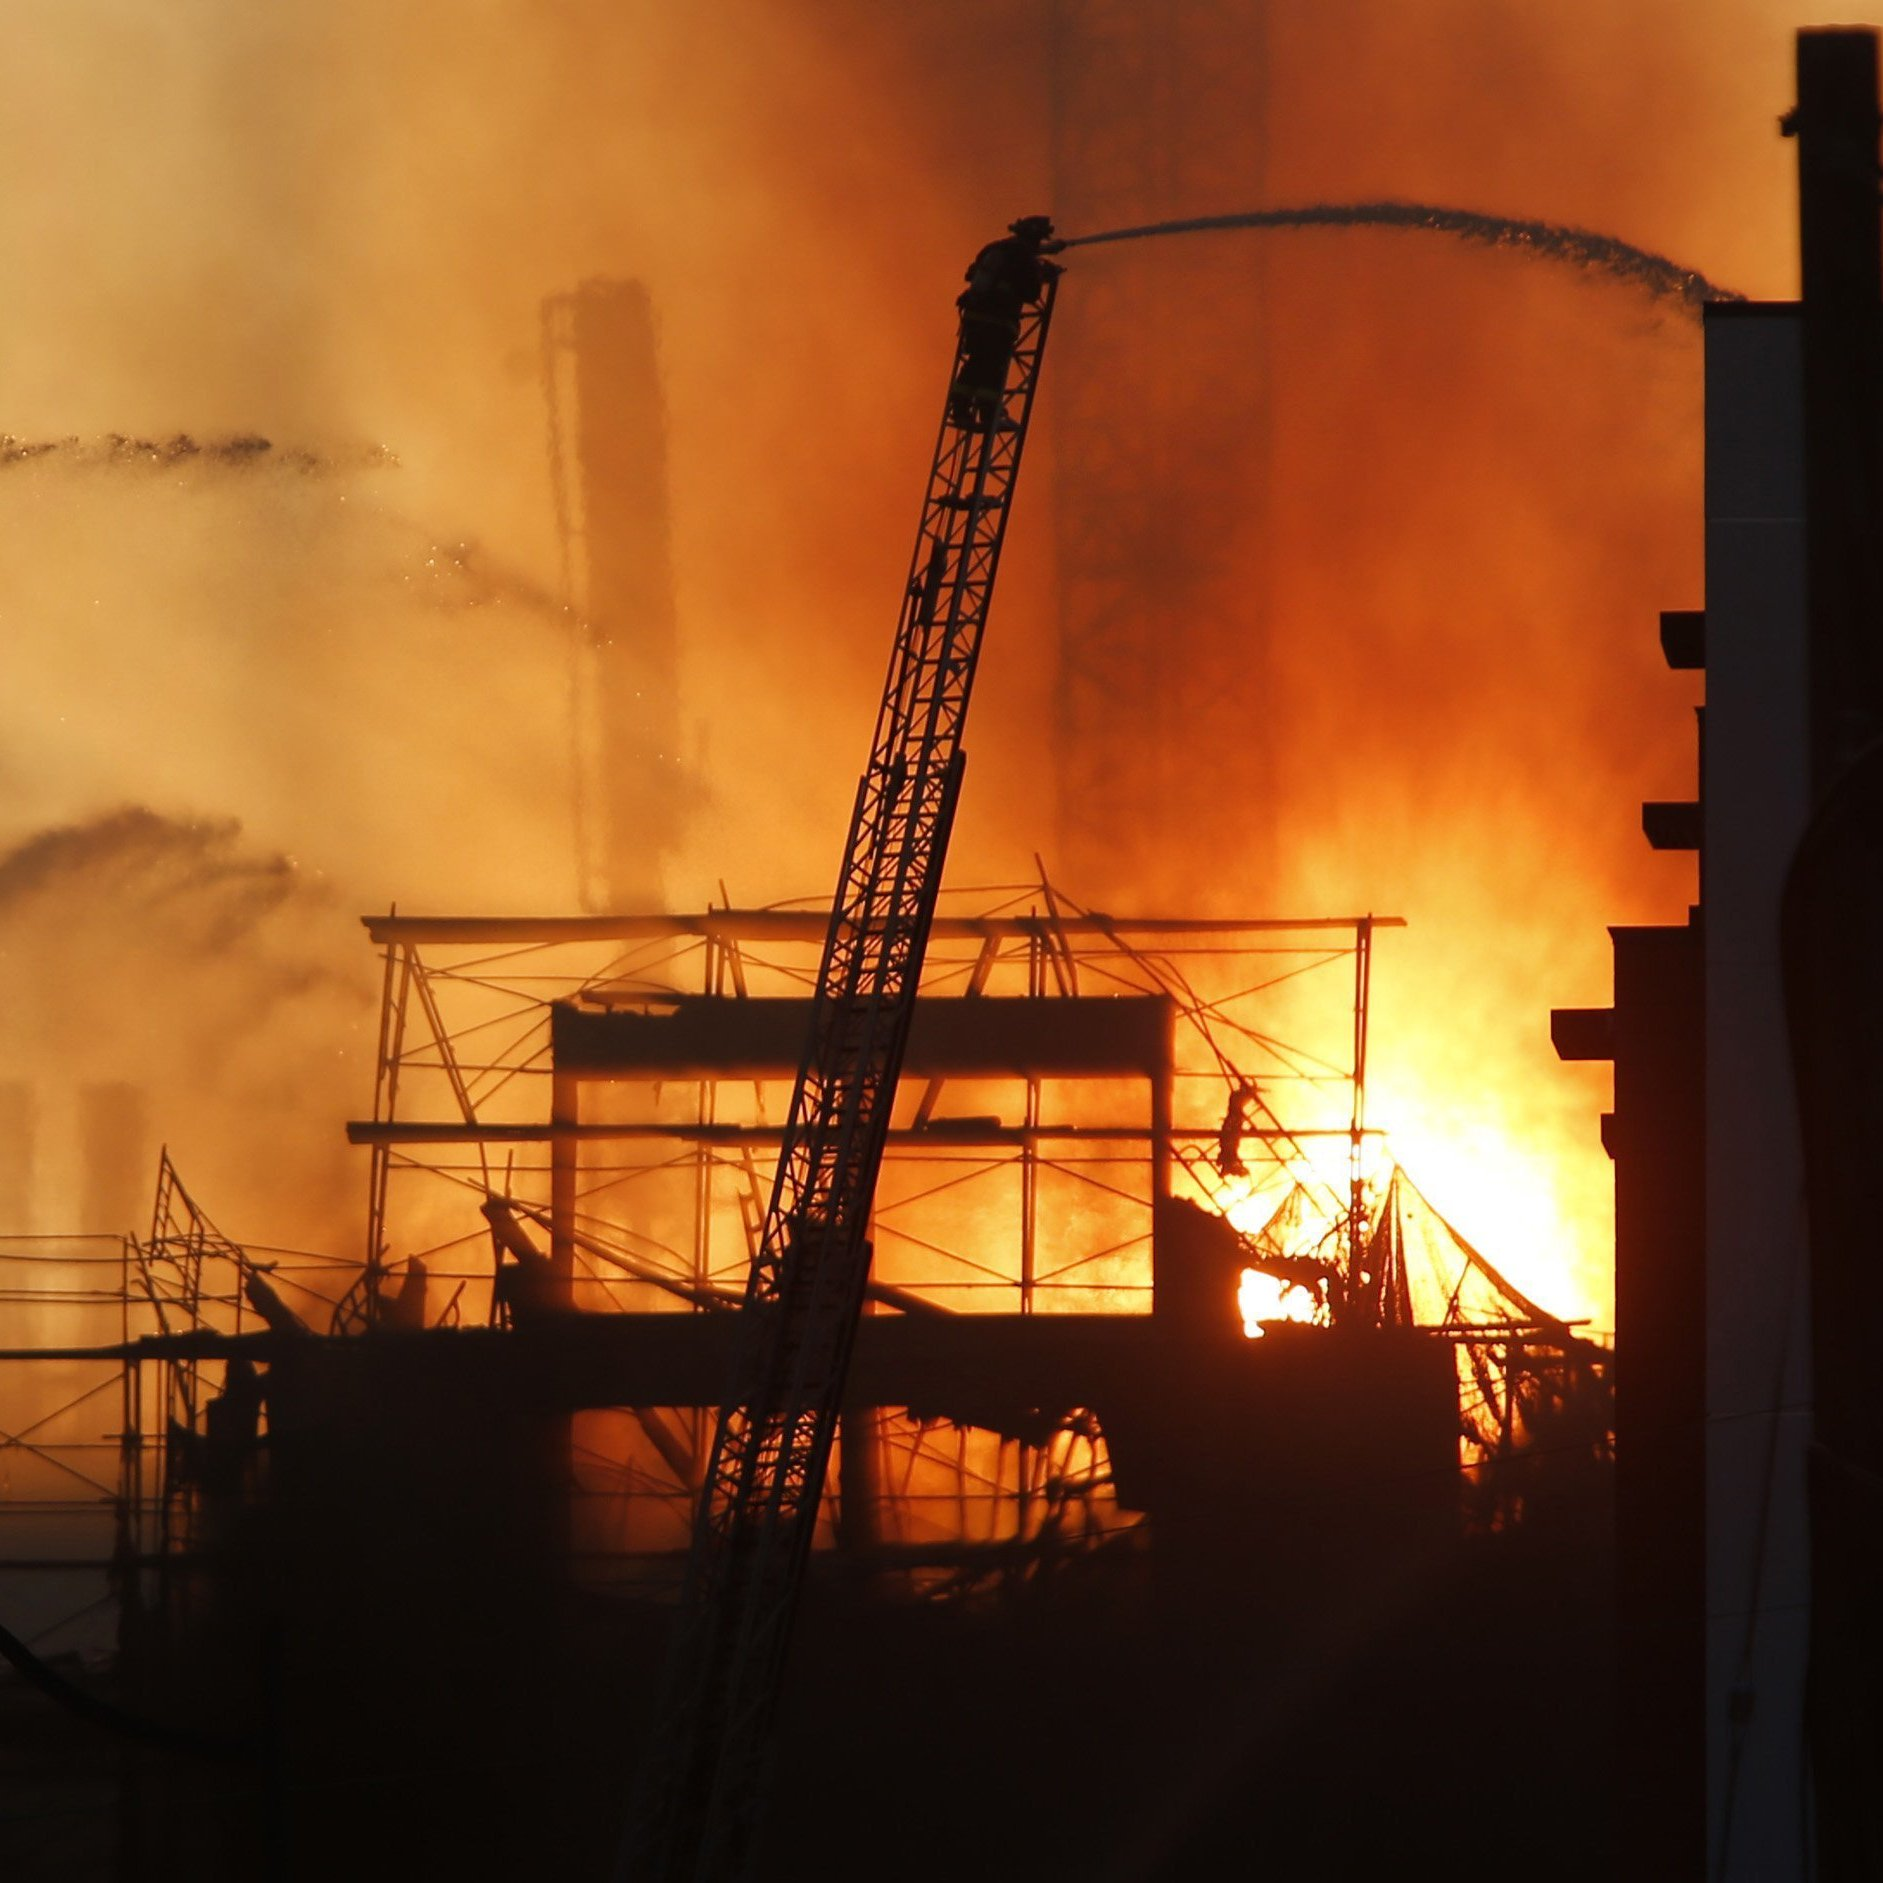 Firefighters battle the multi-story blaze in a residential building under construction Tuesday in San Francisco's Mission Bay neighborhood.